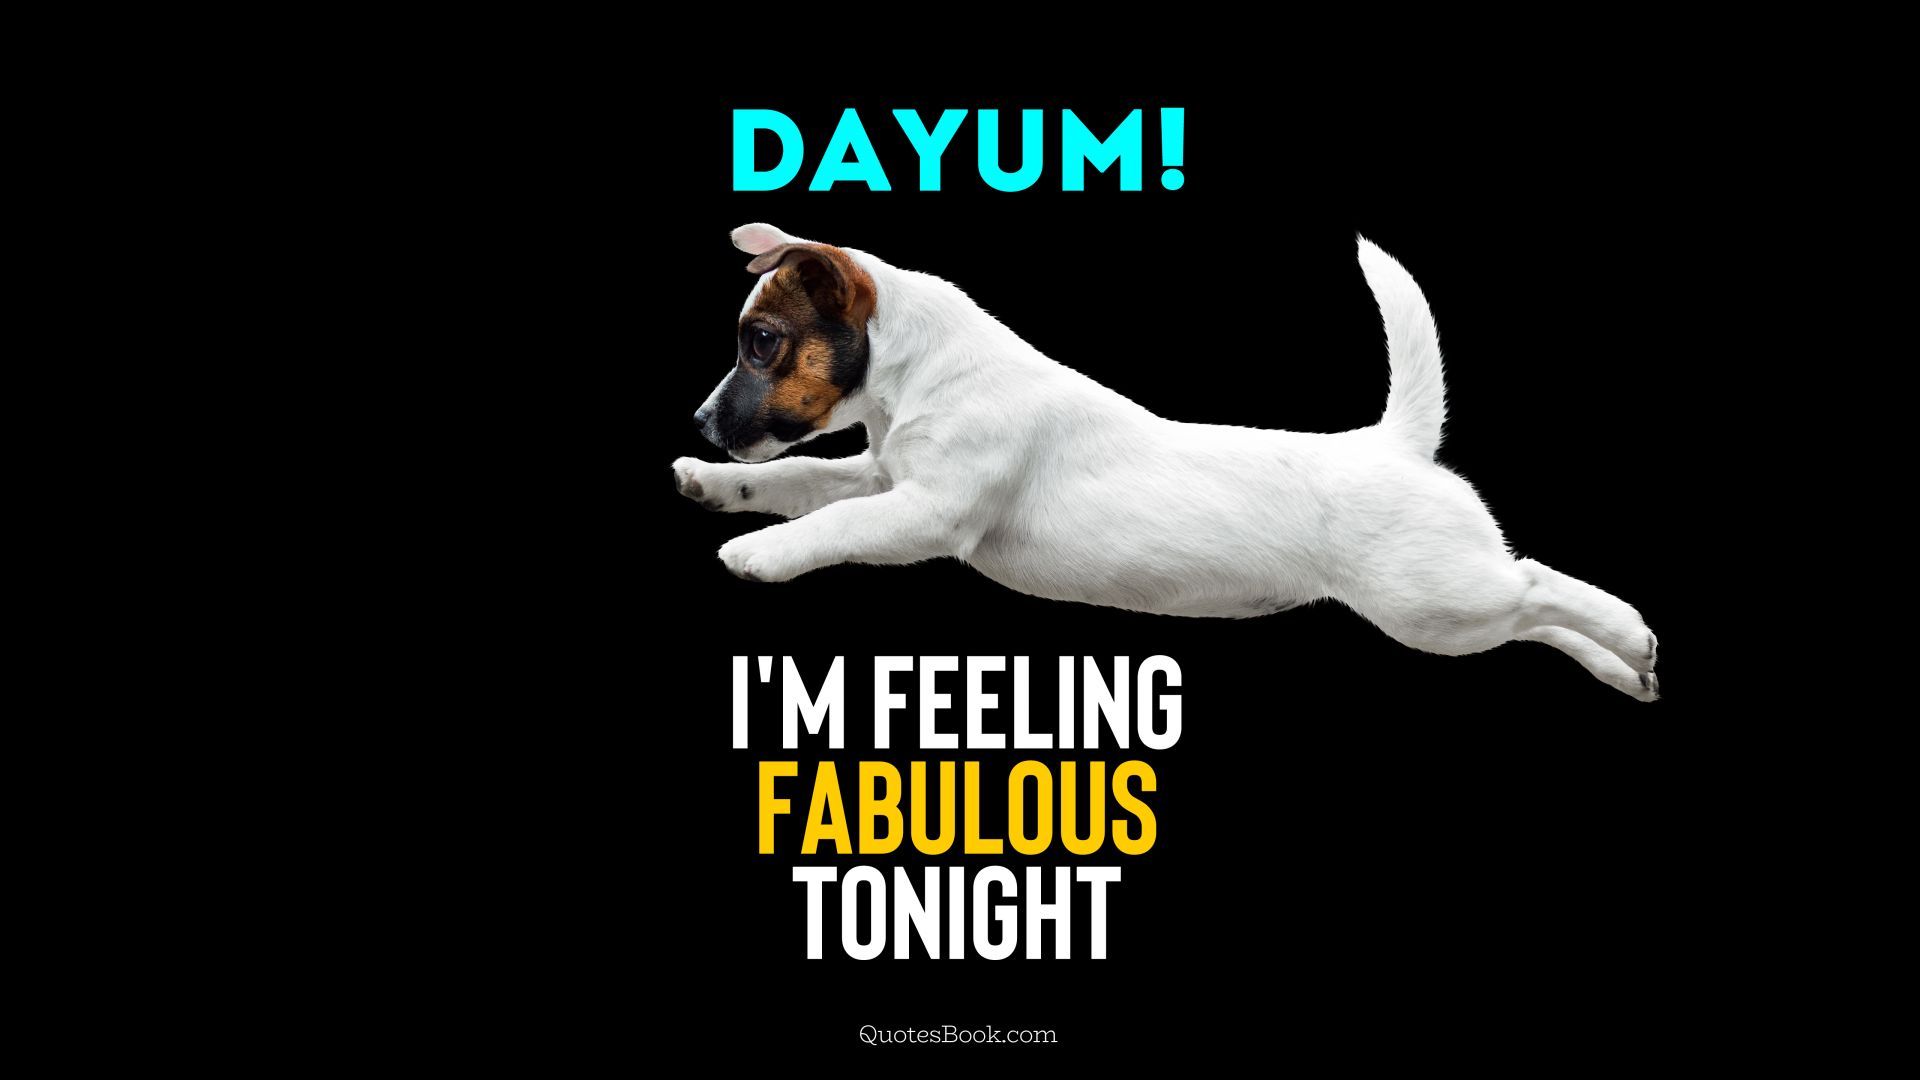 Dayum! I'm feeling fabulous tonight